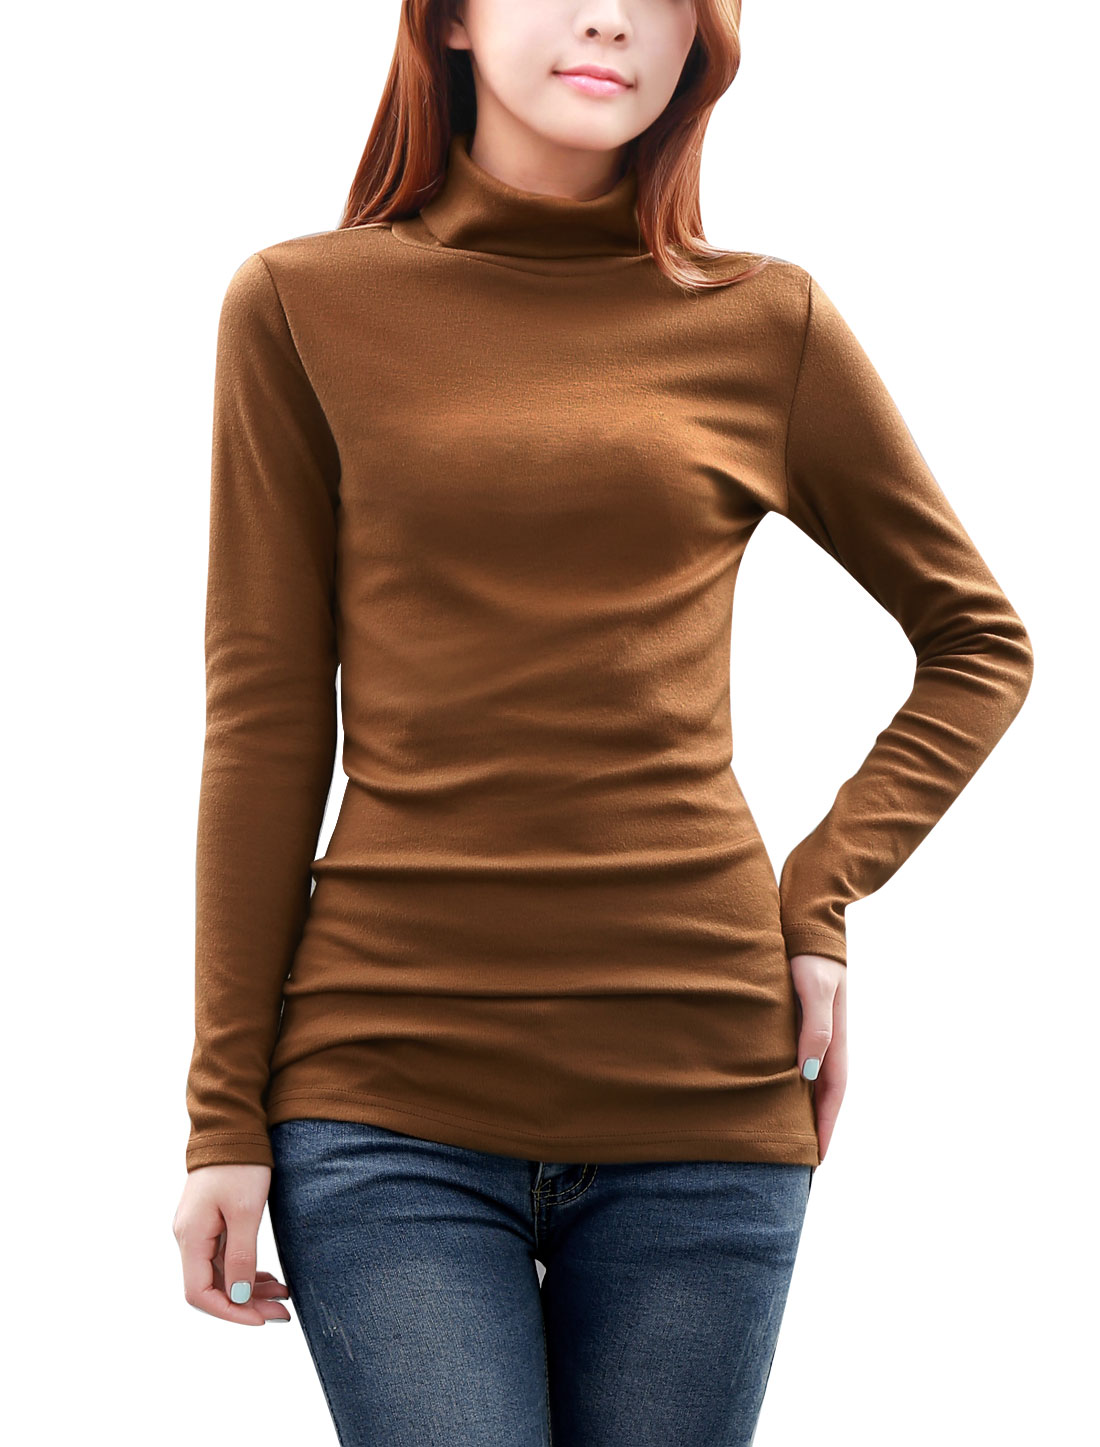 Ladies Turtle Neck Long Sleeve Stretchy Knit Shirt Khaki S